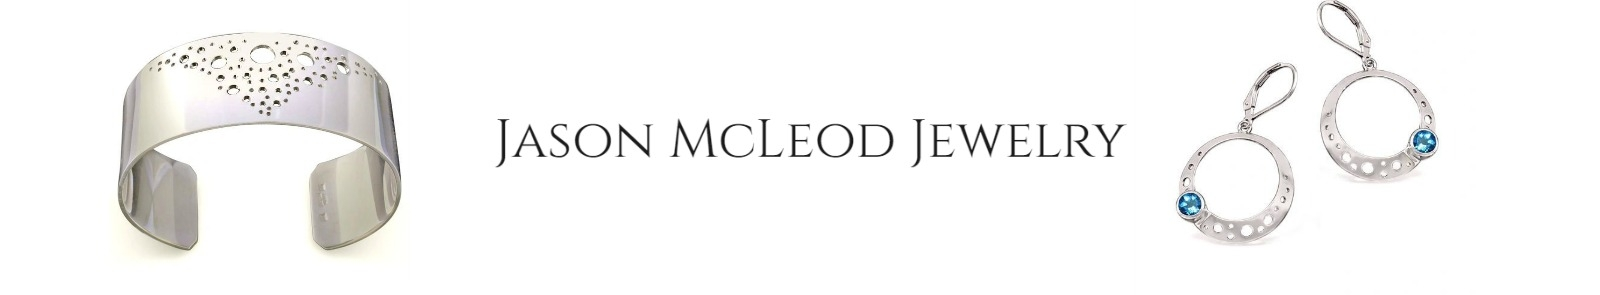 Jason McLeod Jewelry